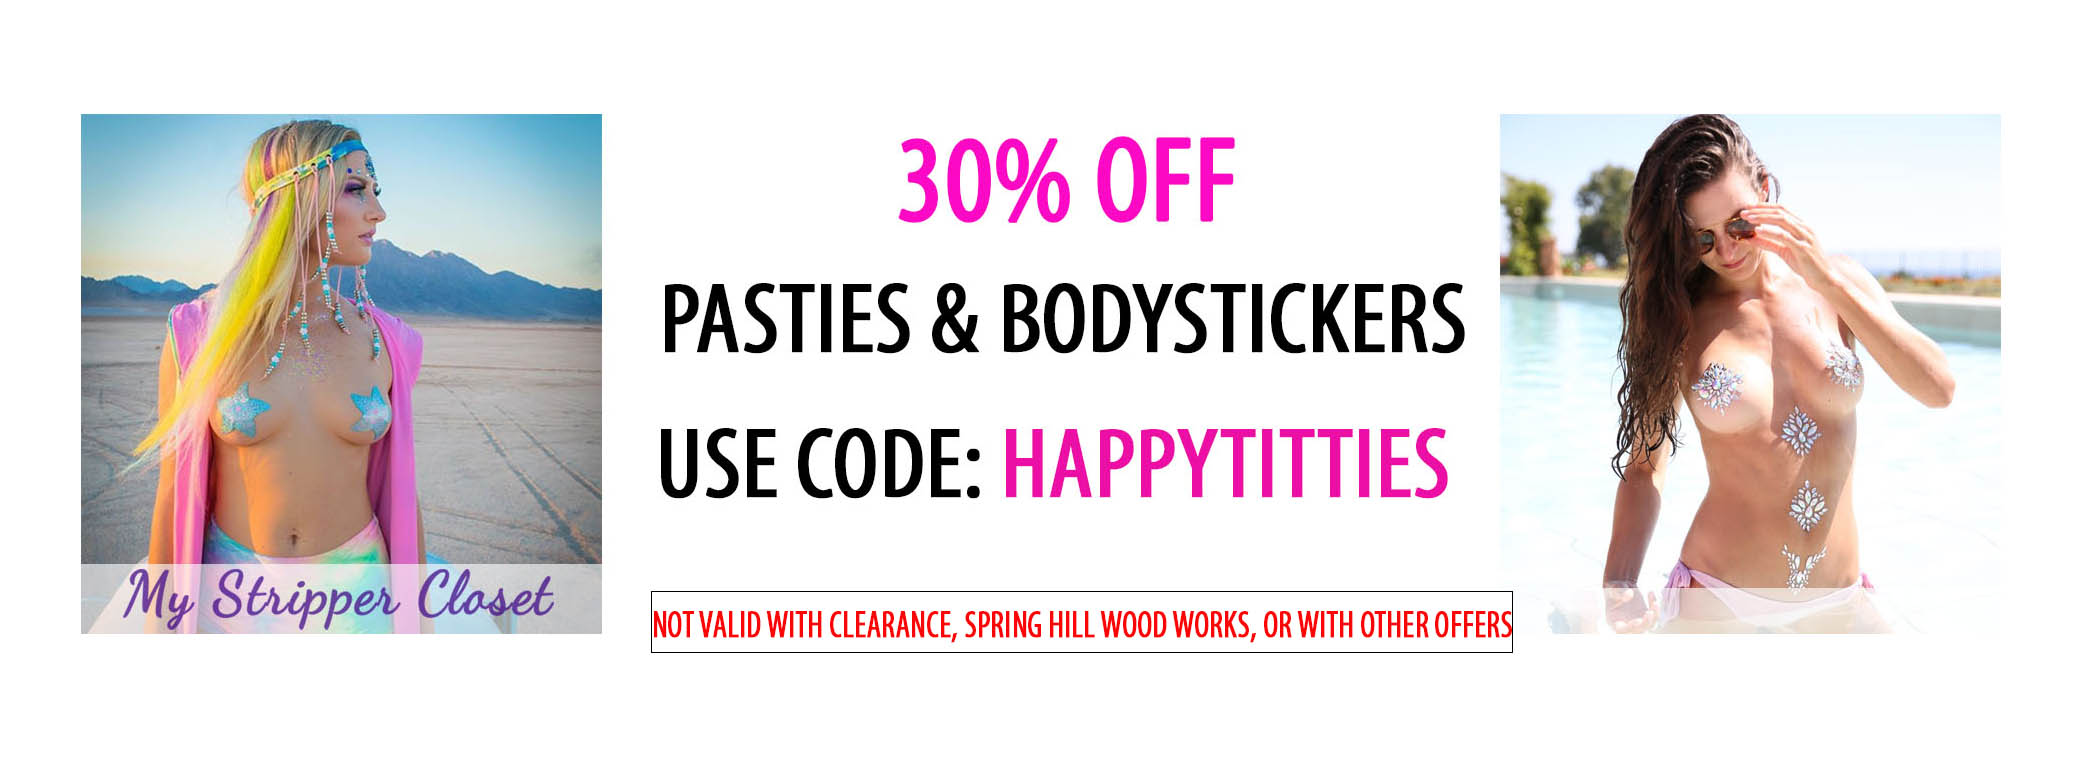 30% OFF PASTIES AND BODYSTICKERS MYSTRIPPERCLOSET.COM